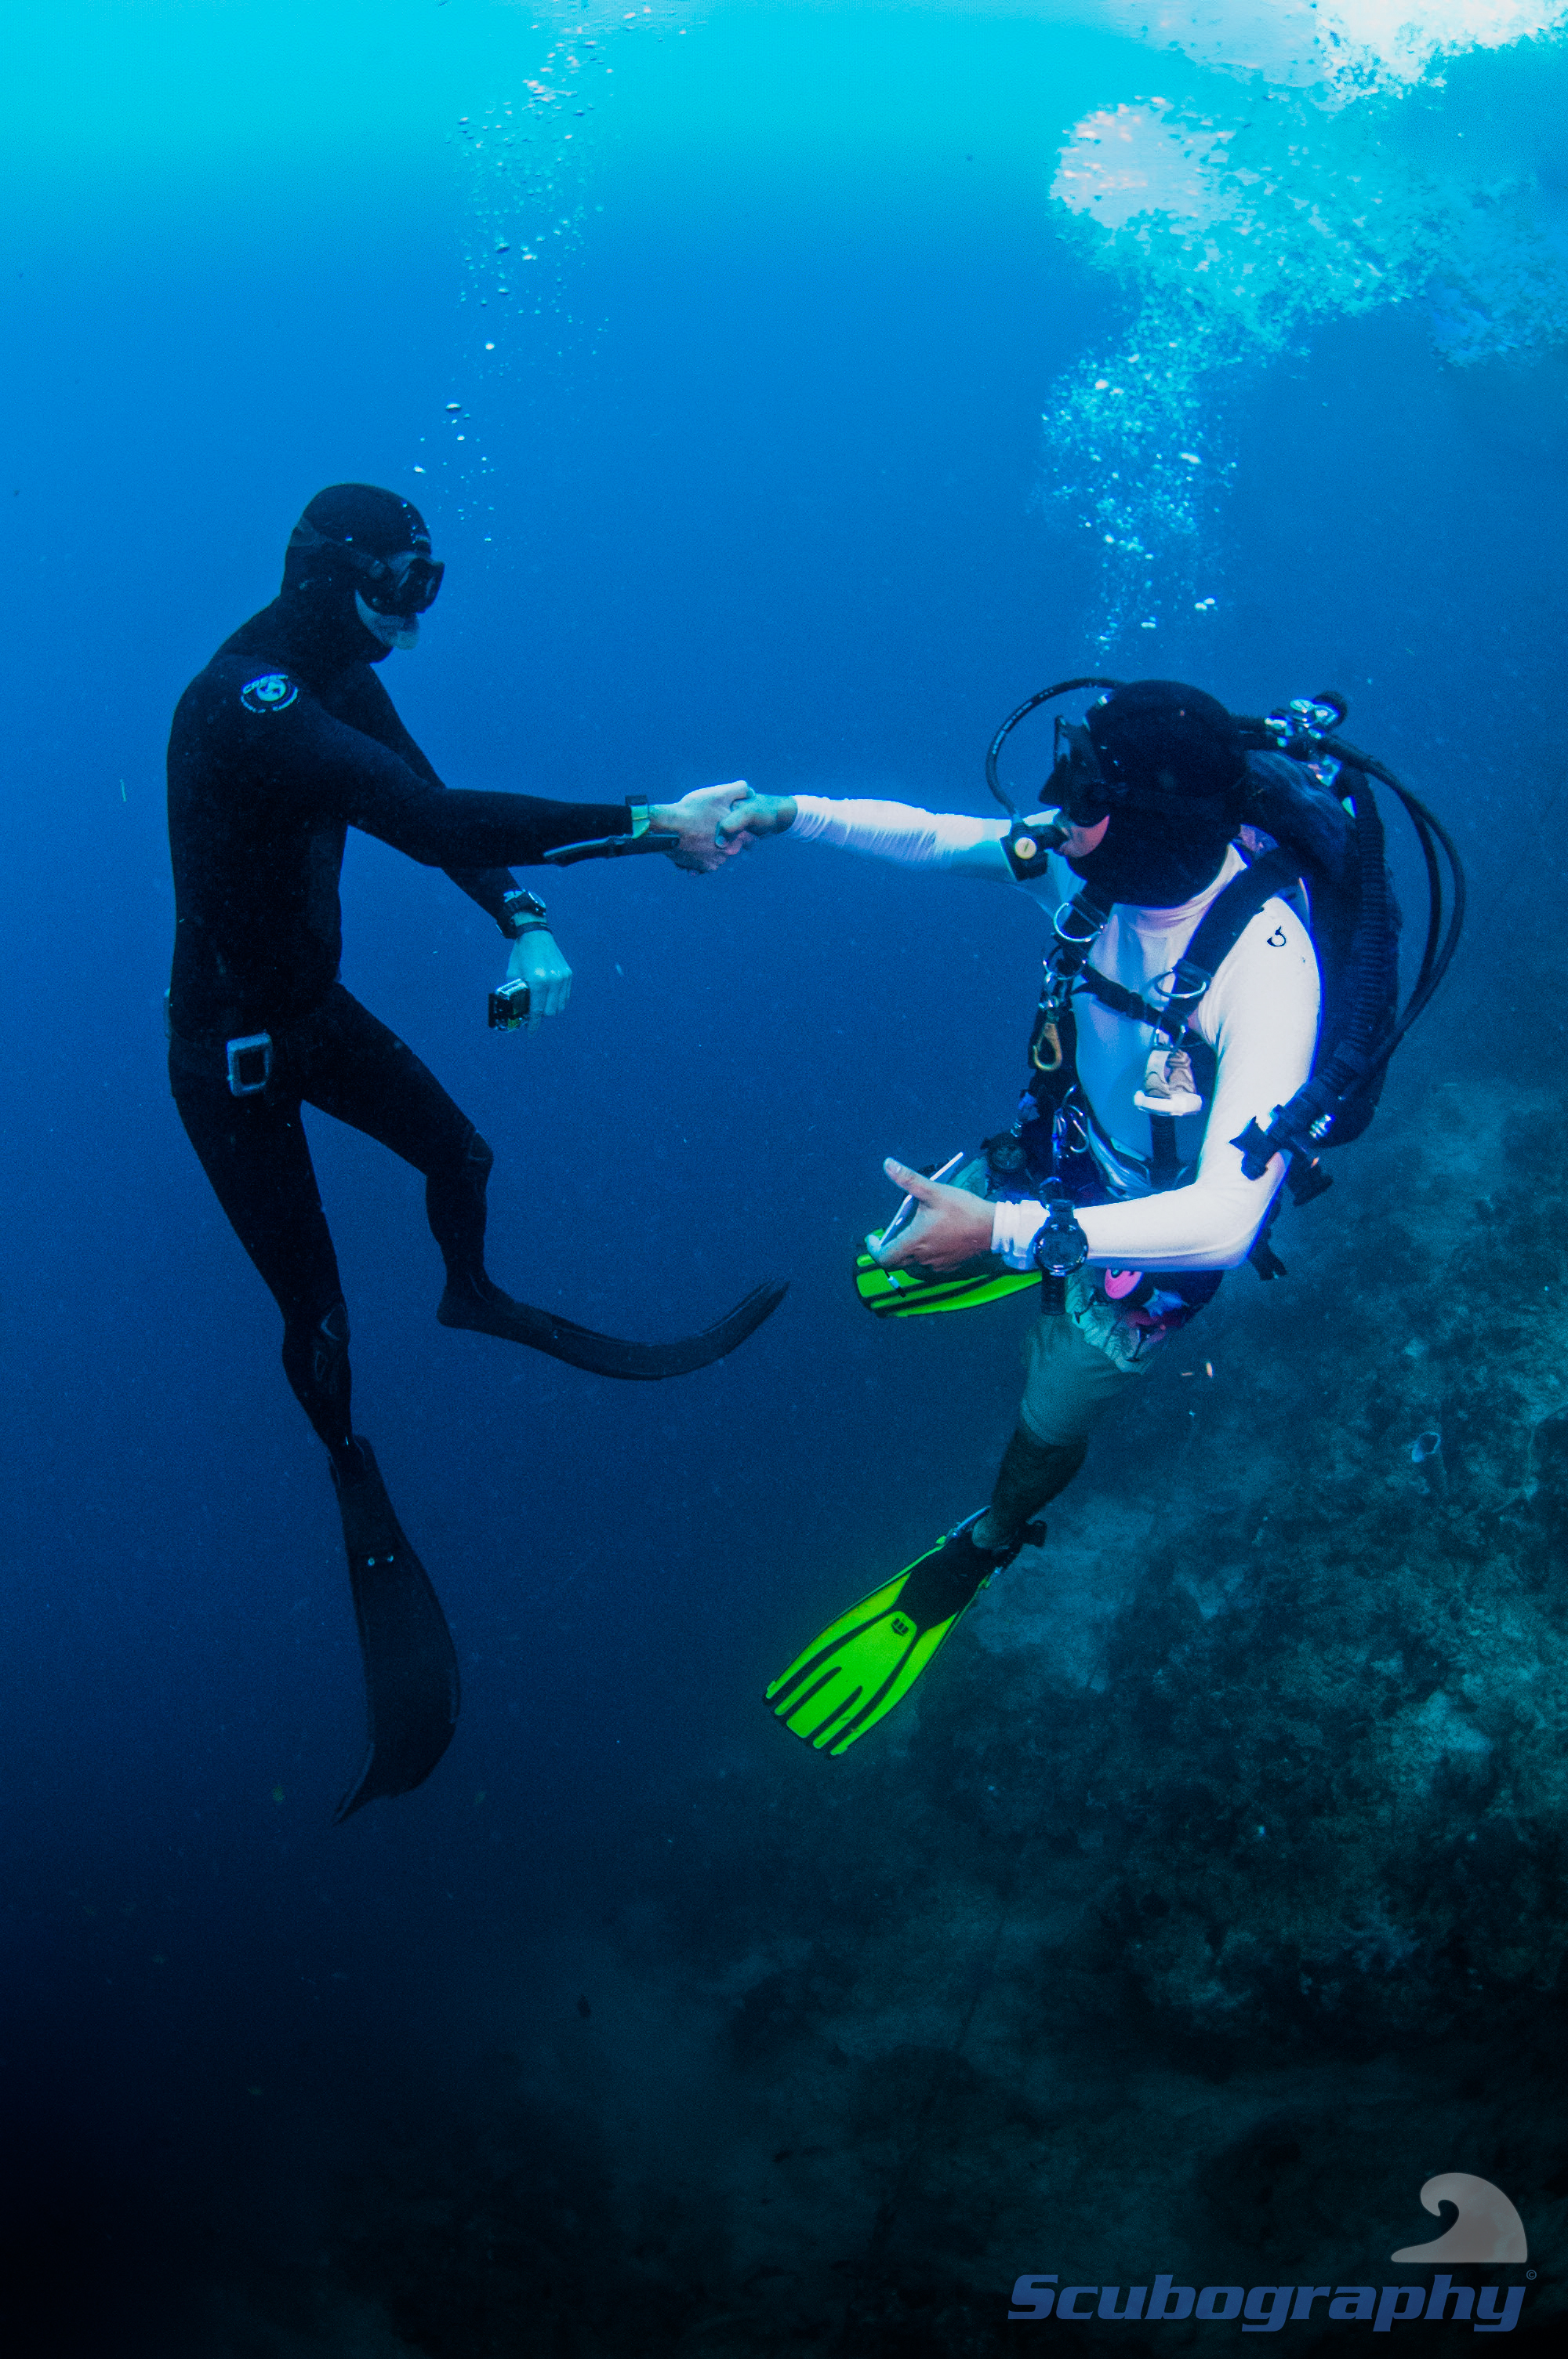 Freediver and diver